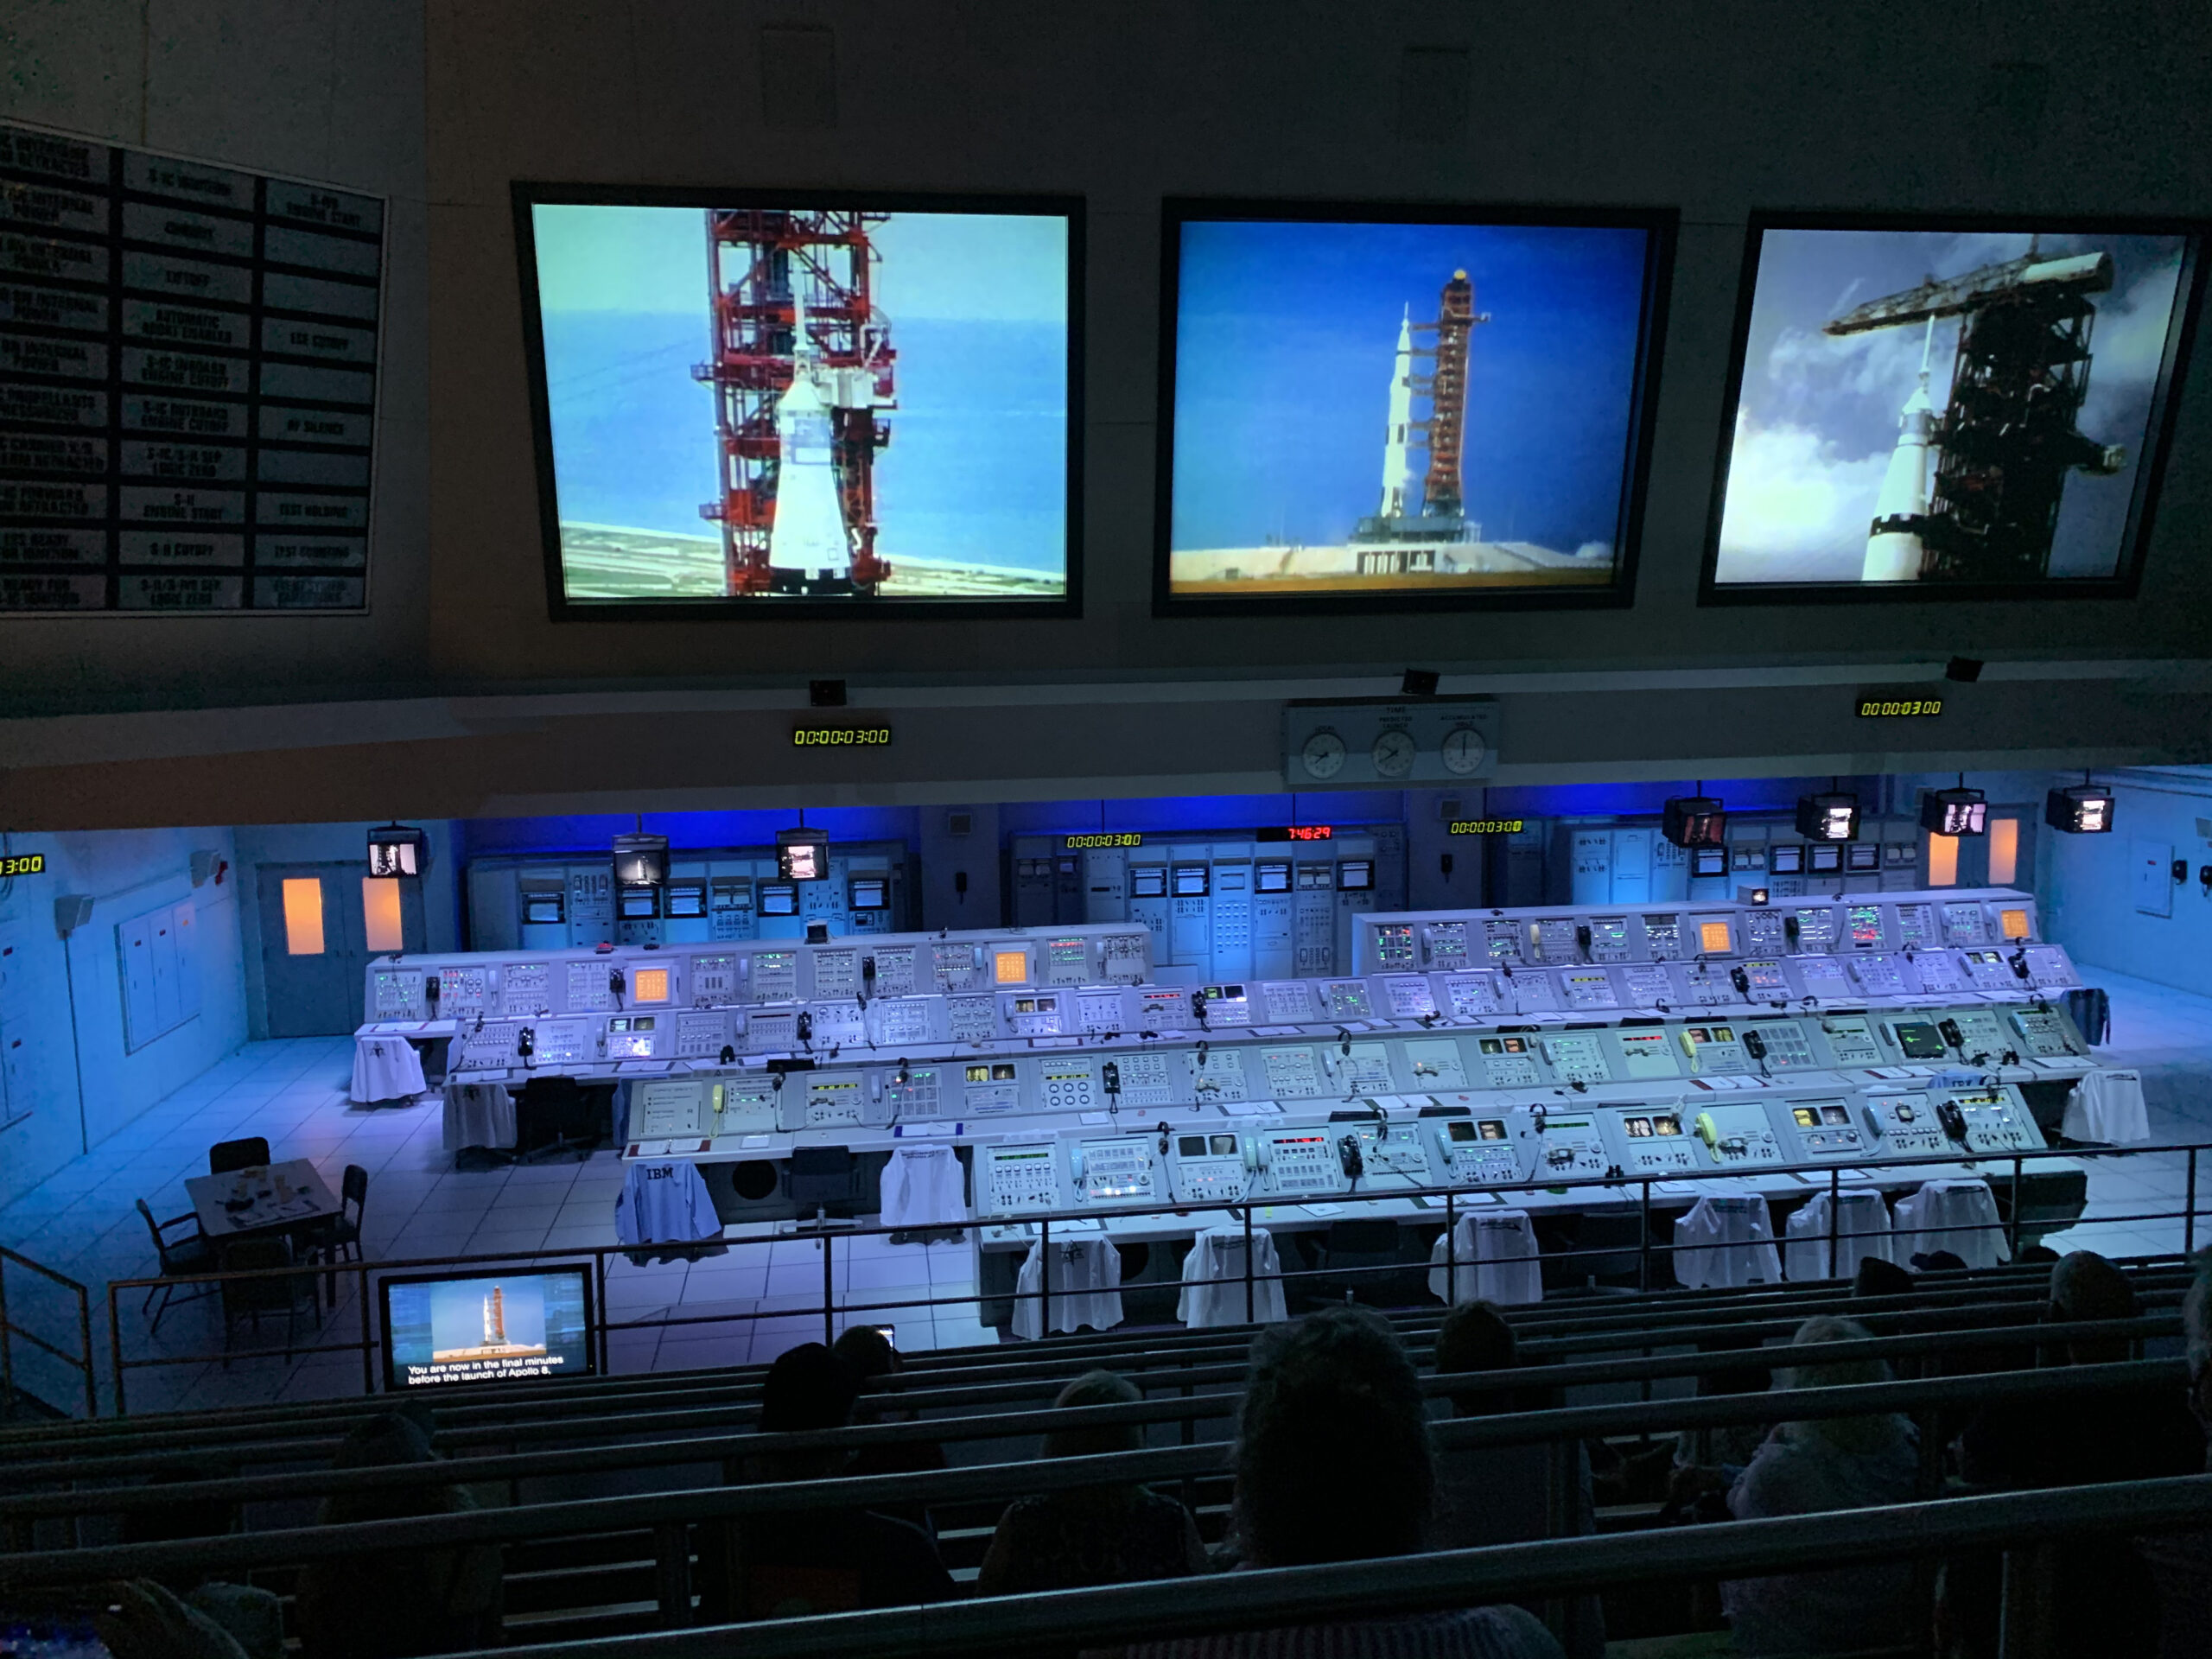 Kennedy Space Center Control Center at the Apollo Saturn 5 Center